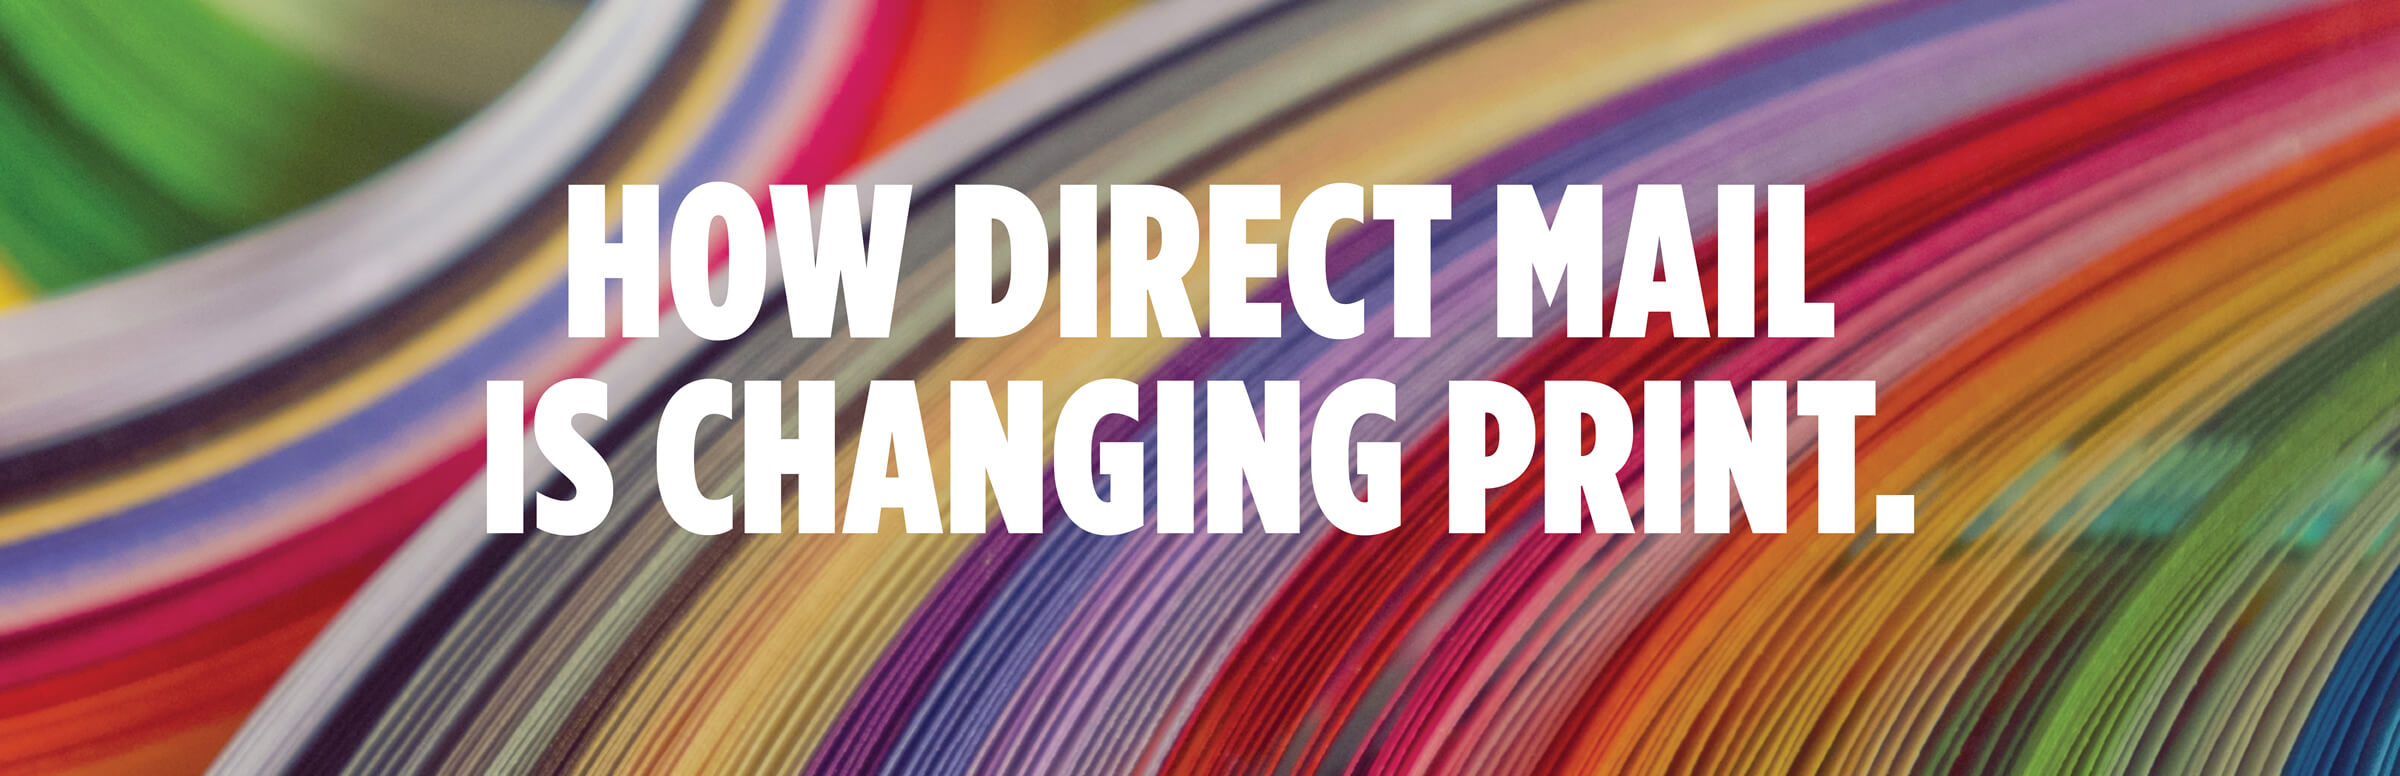 How Direct Mail Is Changing Print